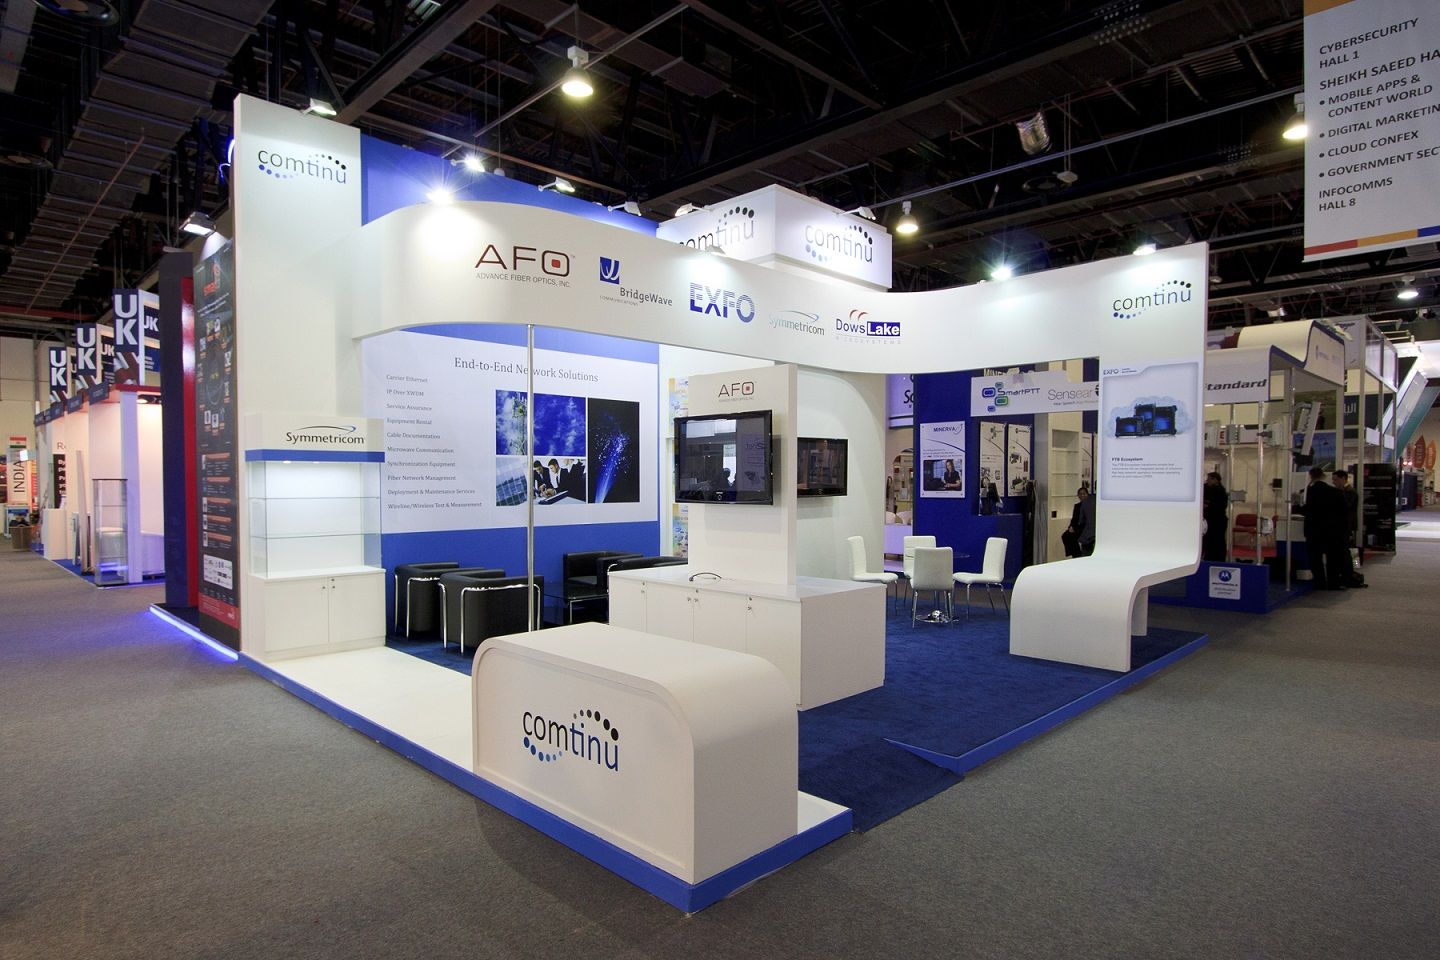 Exhibition Display Stands : Exhibition stands and joinery works display stands www.hox.ae